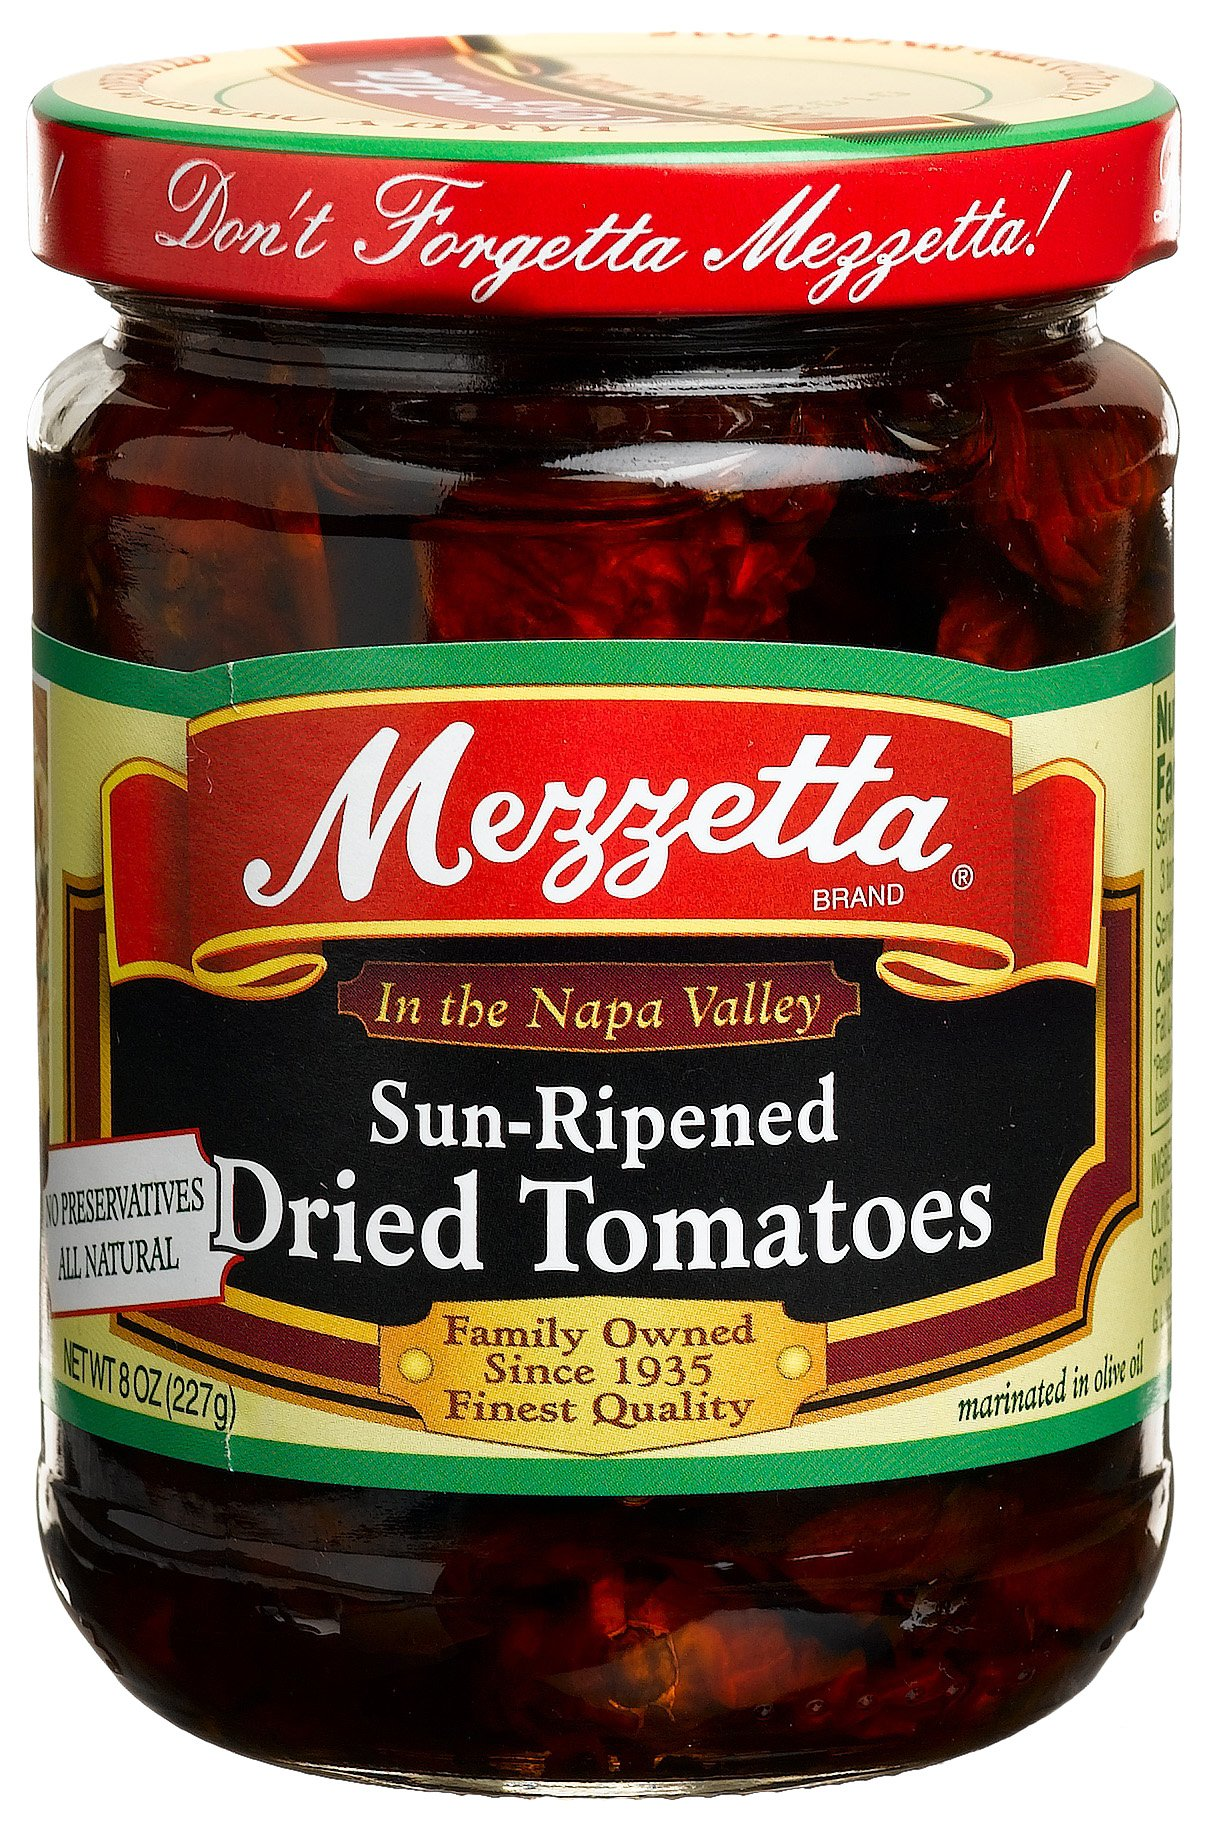 Mezzetta Sundried Tomatoes in Olive Oil, 8-Ounce Jars (Pack of 6)